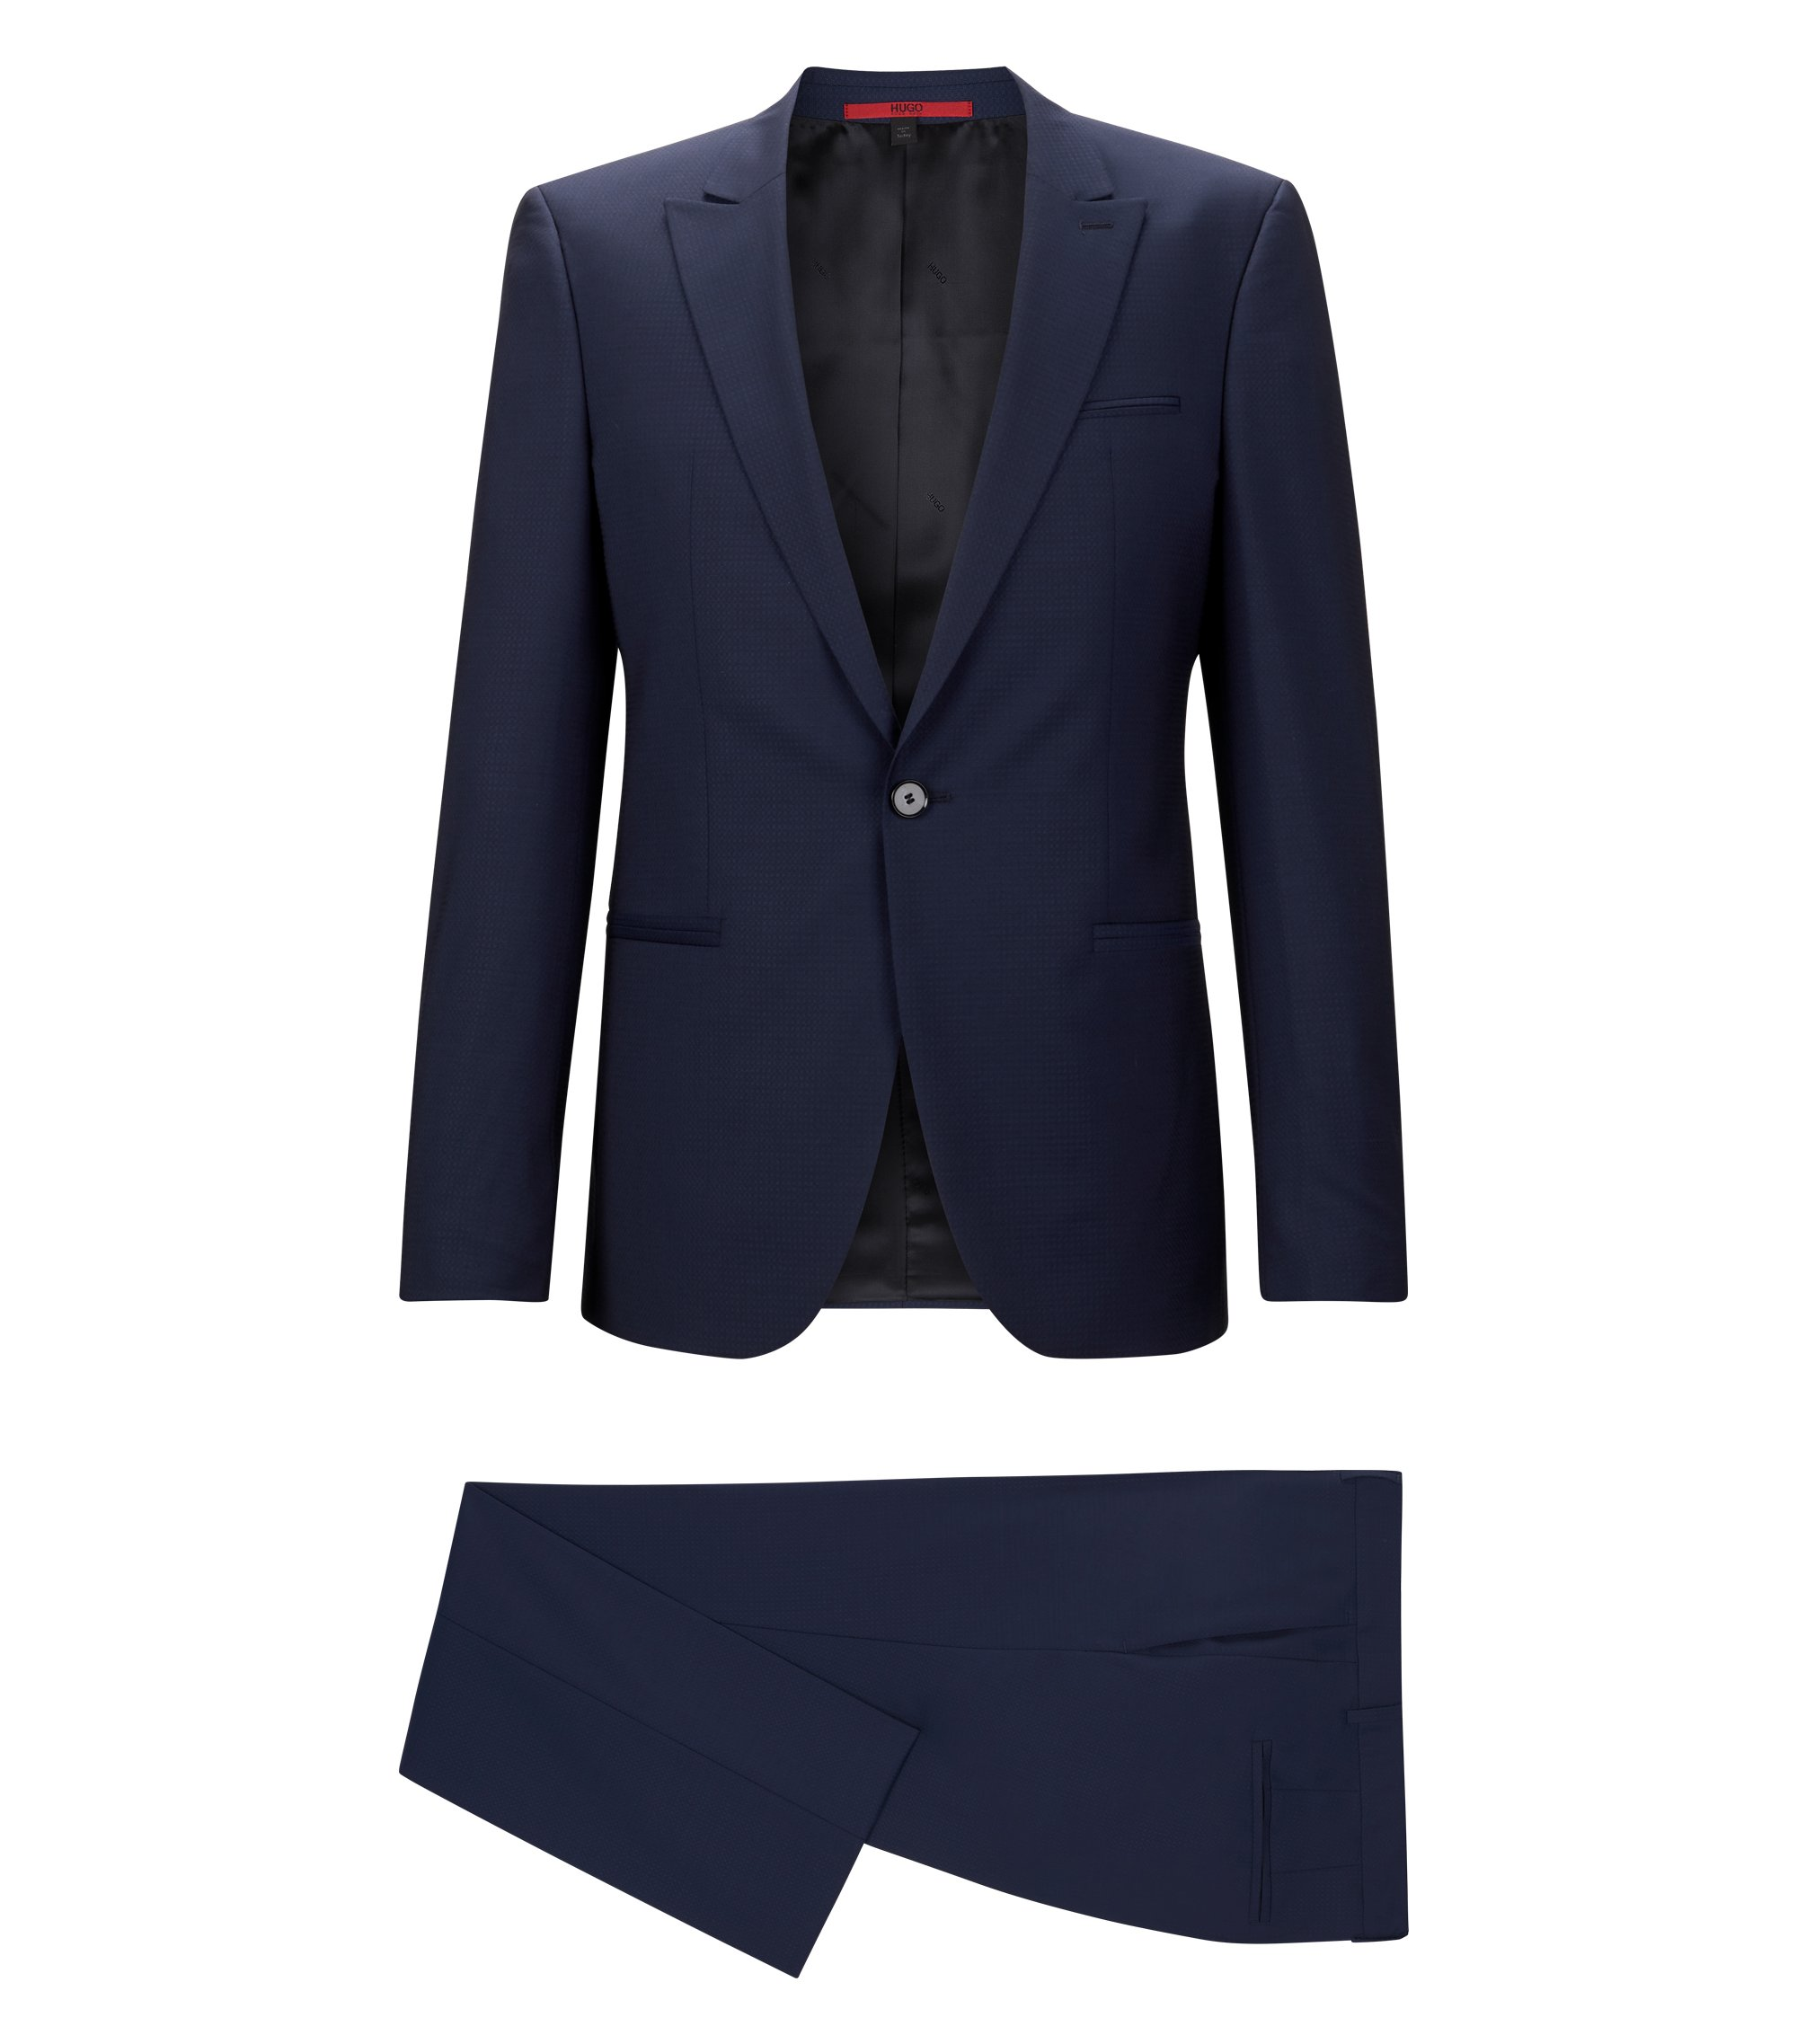 'Adgin/Hiels' | Slim Fit, Jacquard Italian Super 120 Virgin Wool Suit, Open Blue